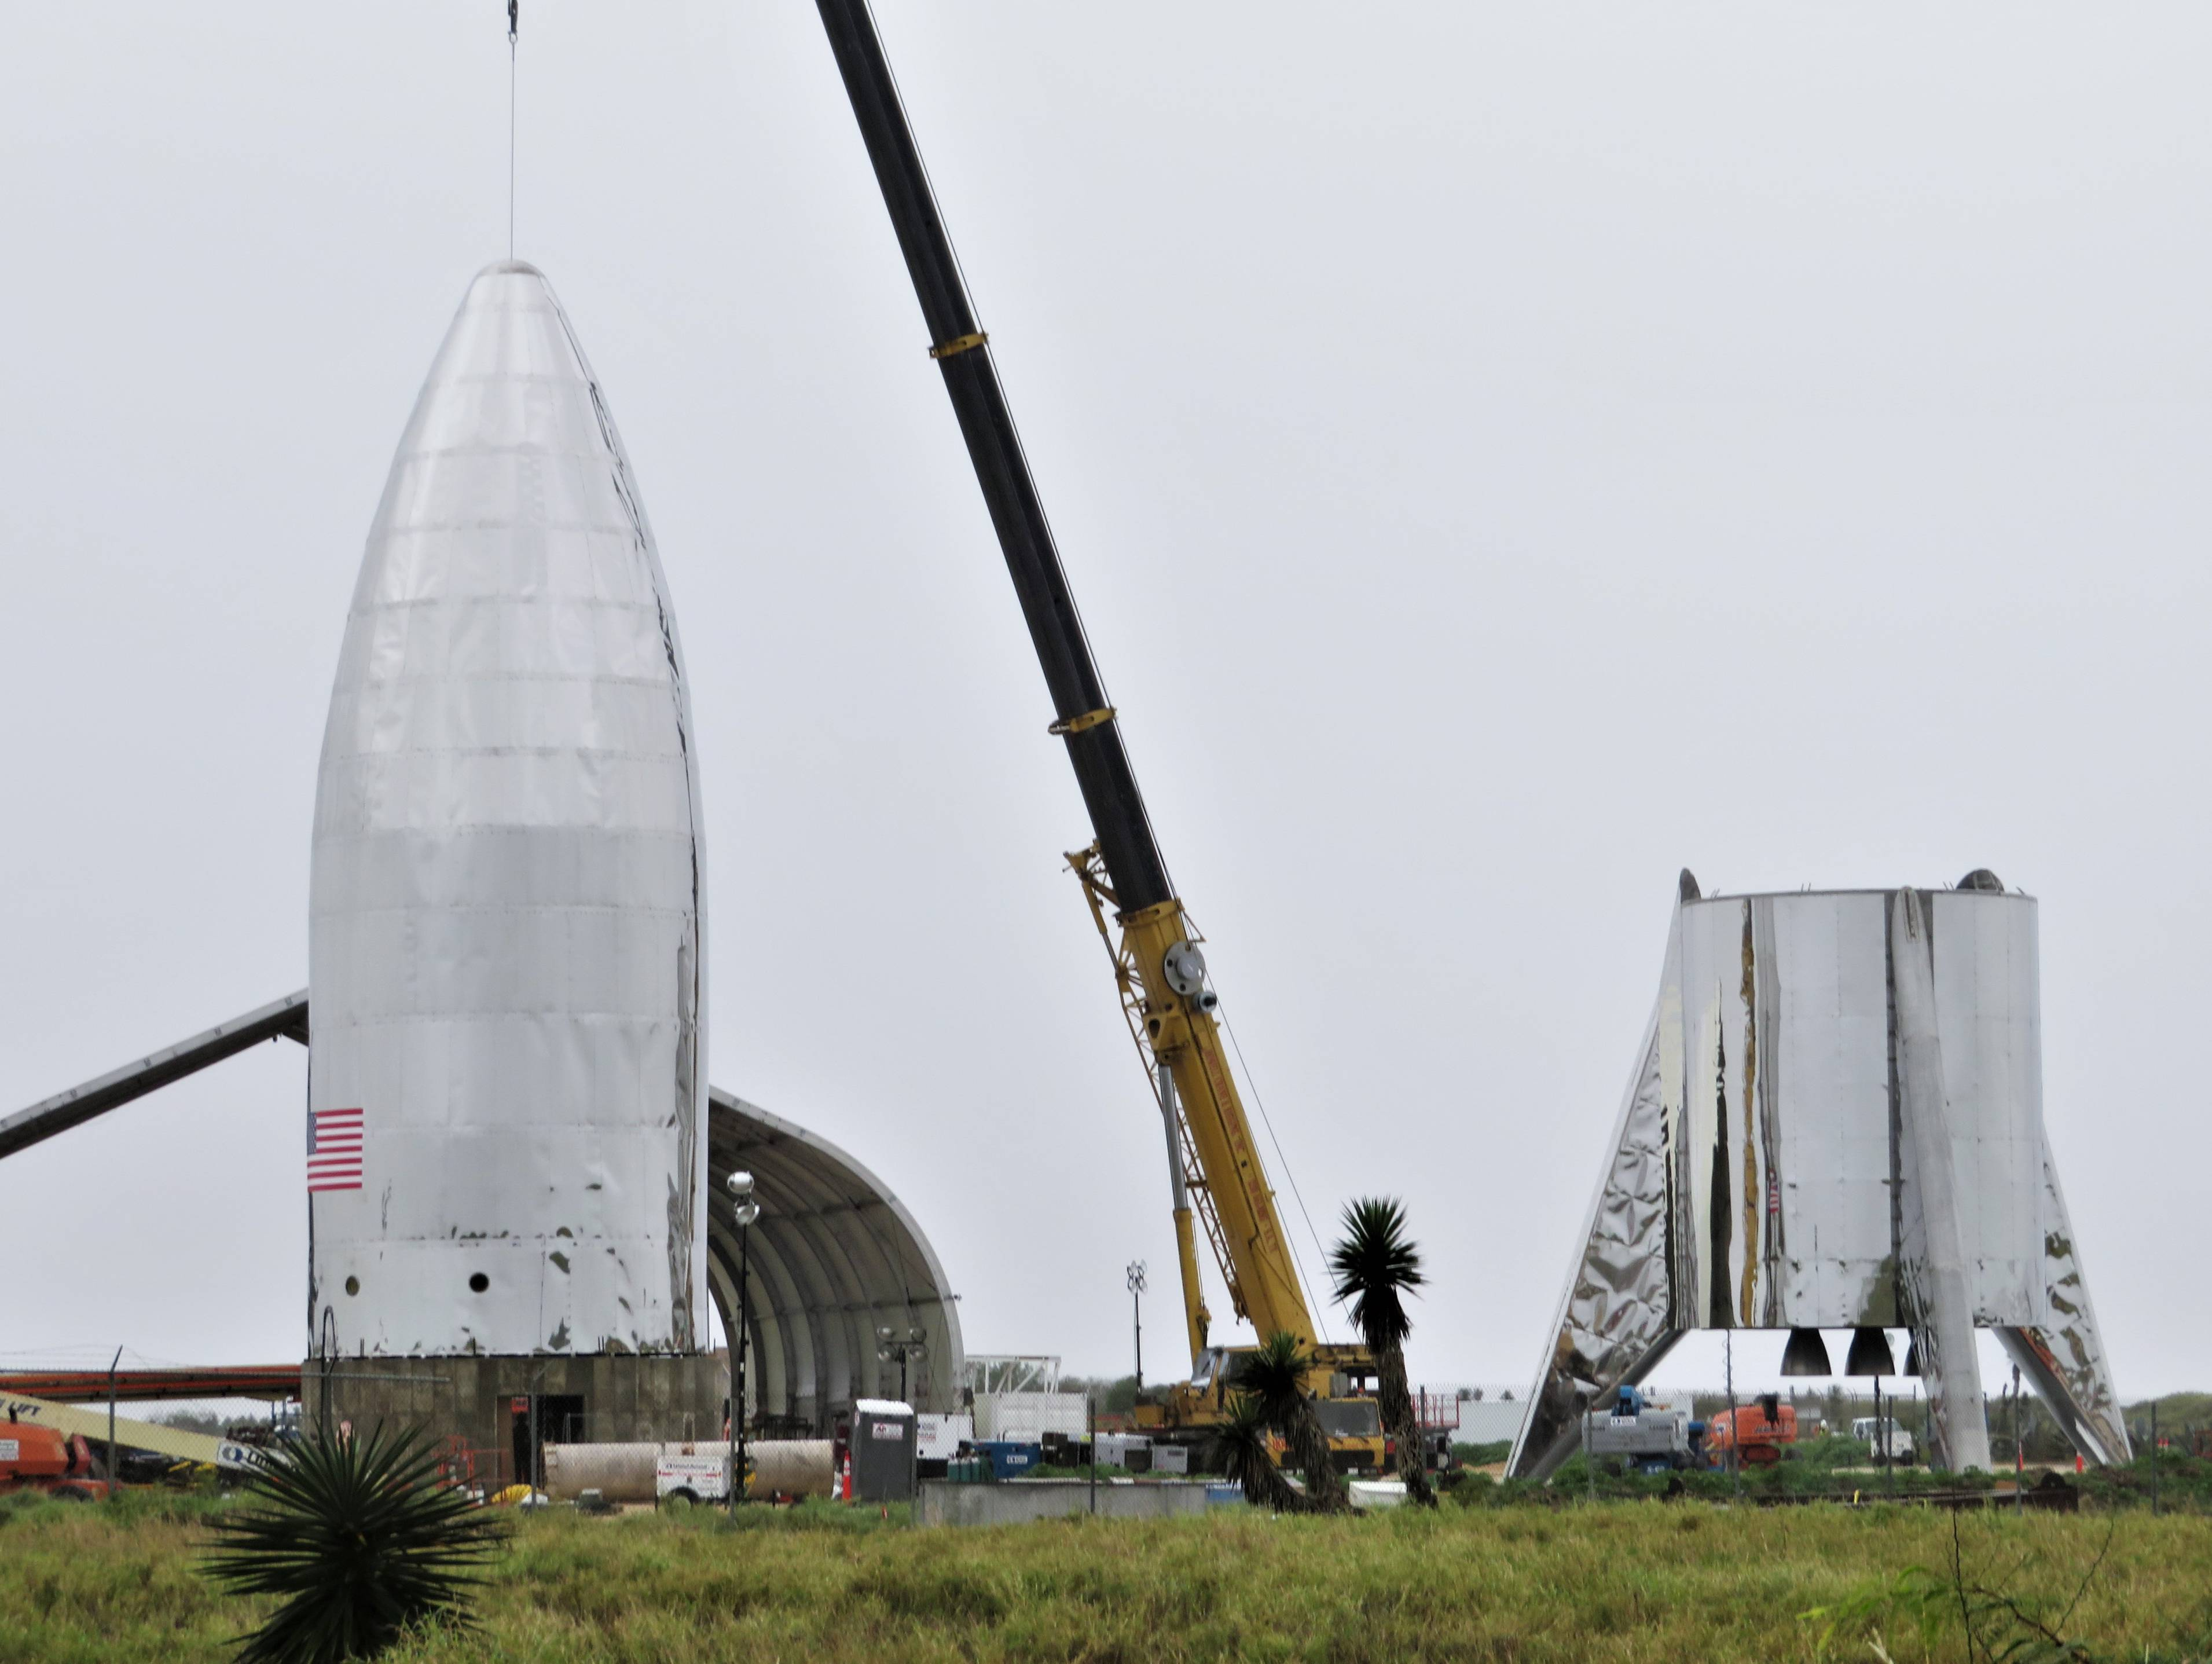 Boca Chica Starship tank install ops 011519 (NSF – bocachicagal) 3(c)